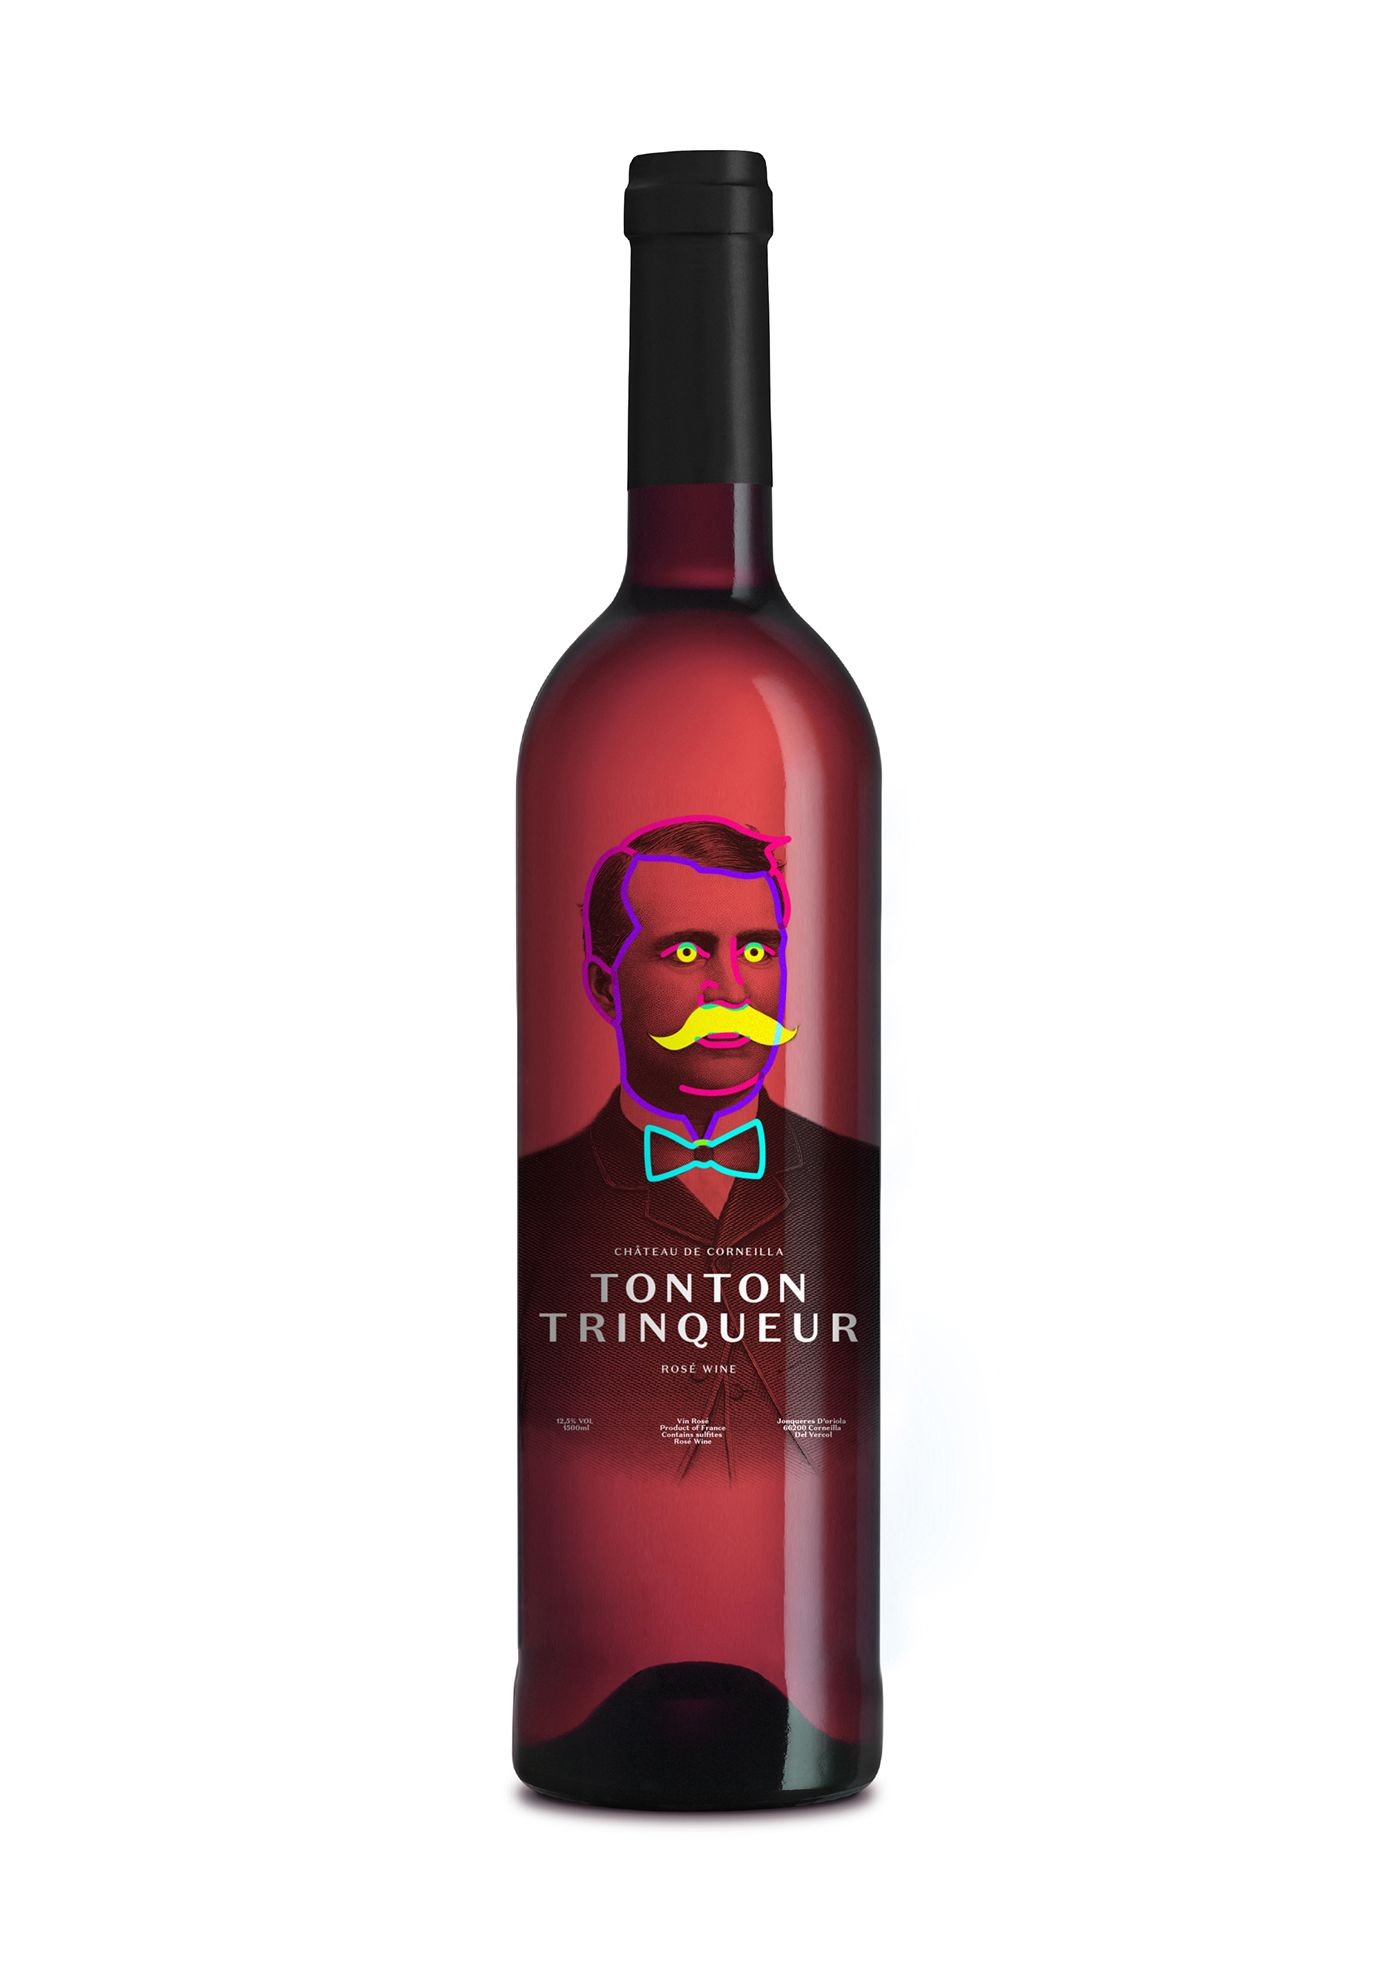 Proposal For Tonton Trinqueur A French Rose Wine The Brief Described The Wine As A Product Aimed At Younger Generations A Rose Wine Best Rose Wine Pinot Wine